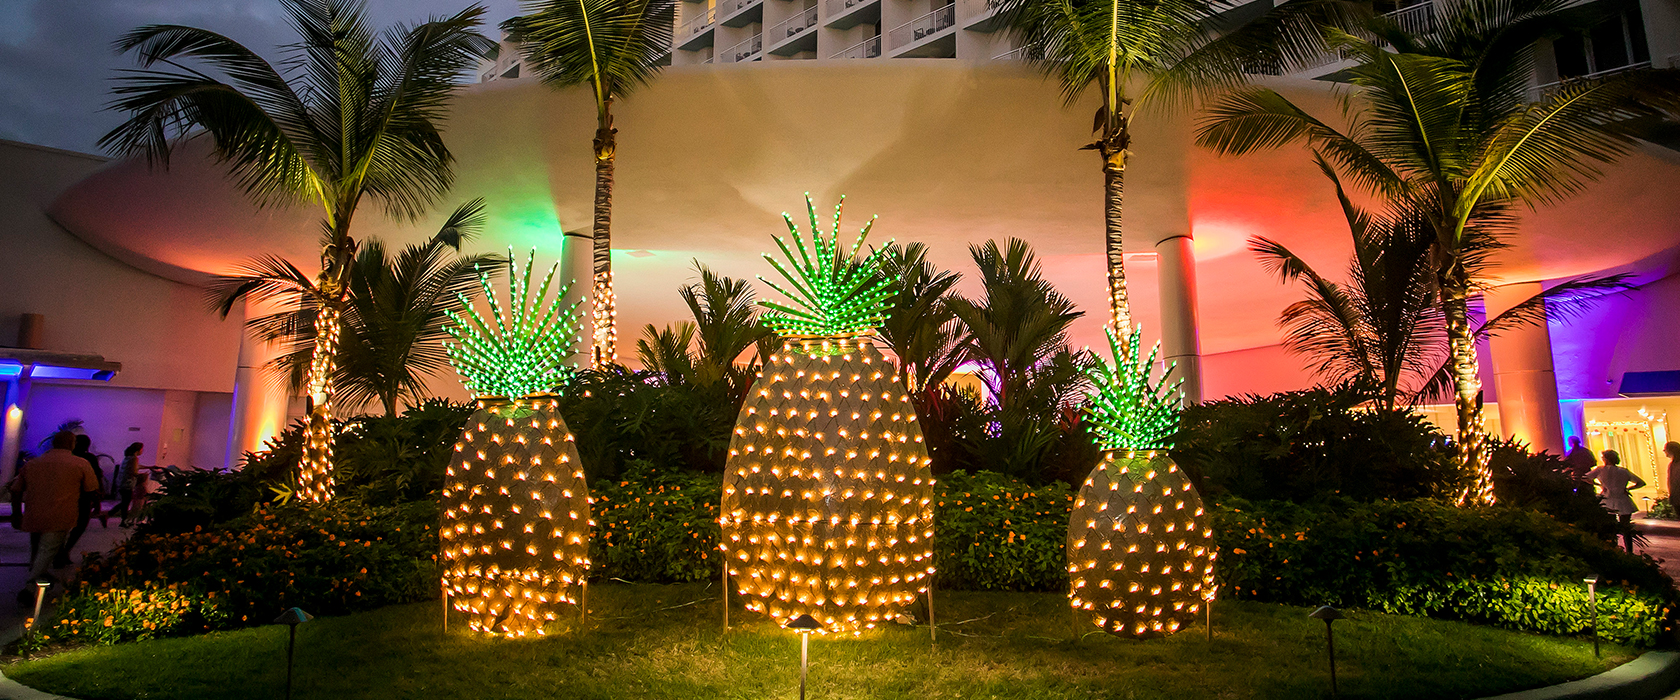 Holiday Pineapples